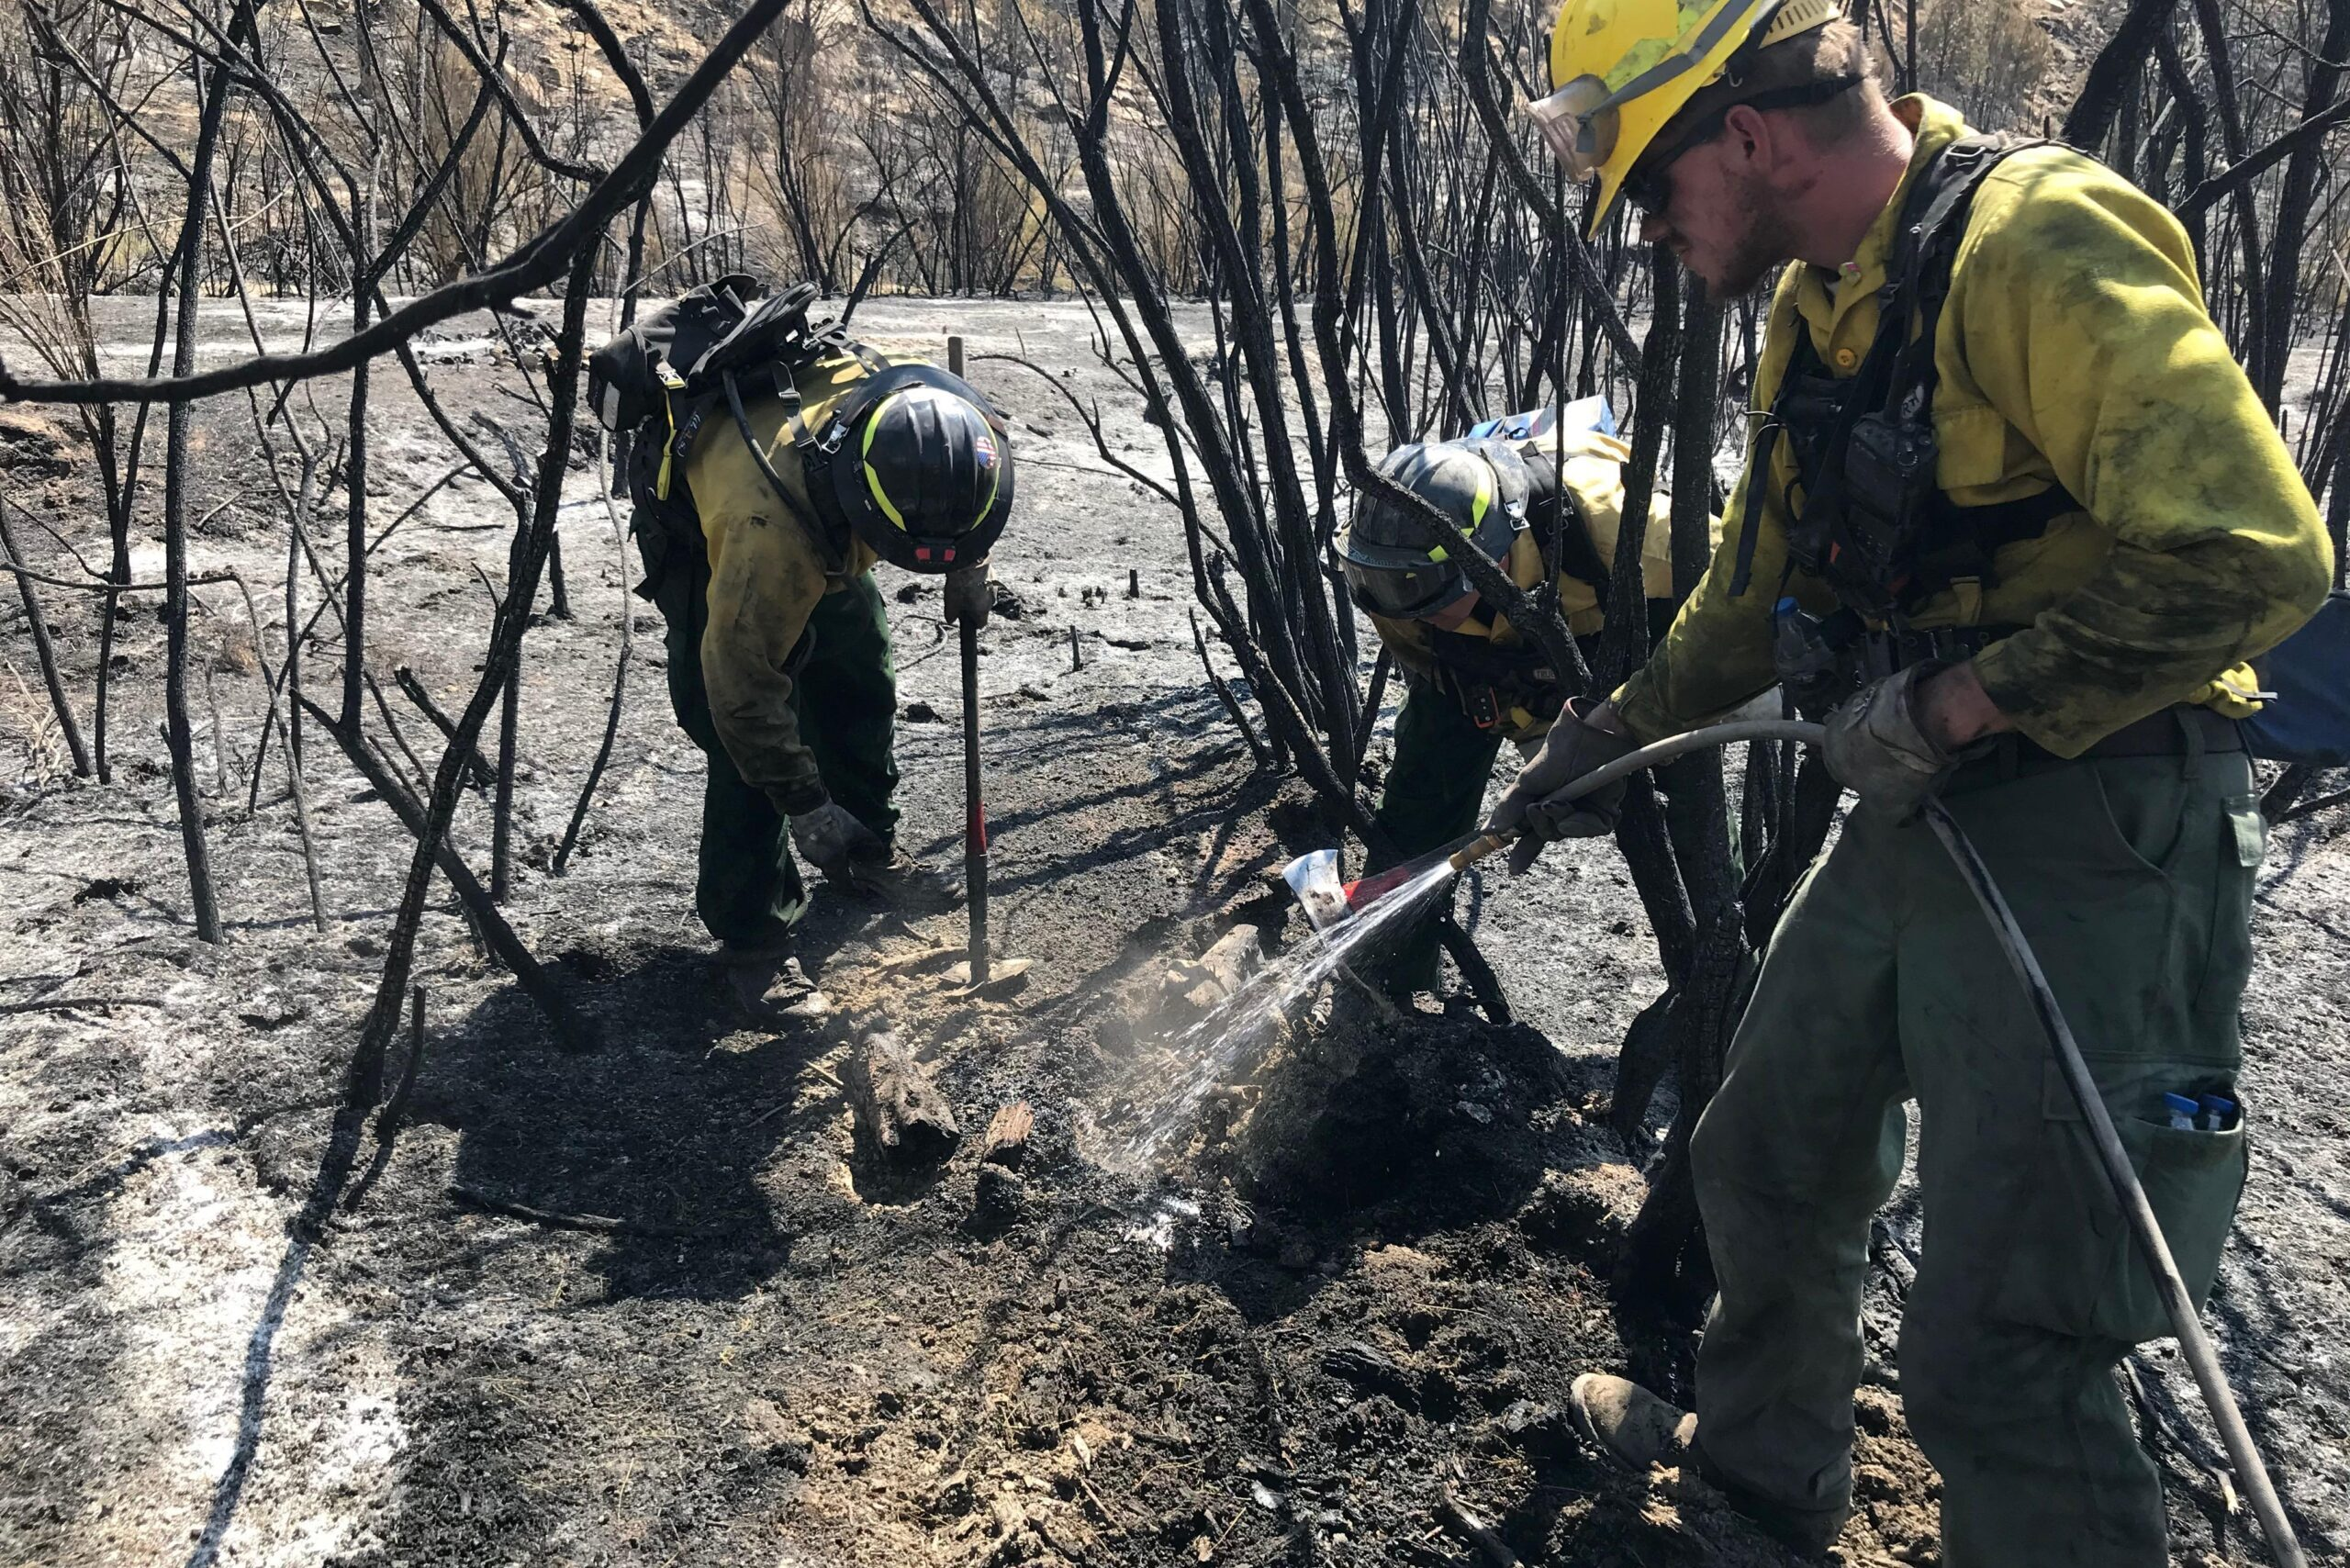 Wildland firefighters mopping up hot spots on the Pine Gulch fire, Aug. 26, 2020.